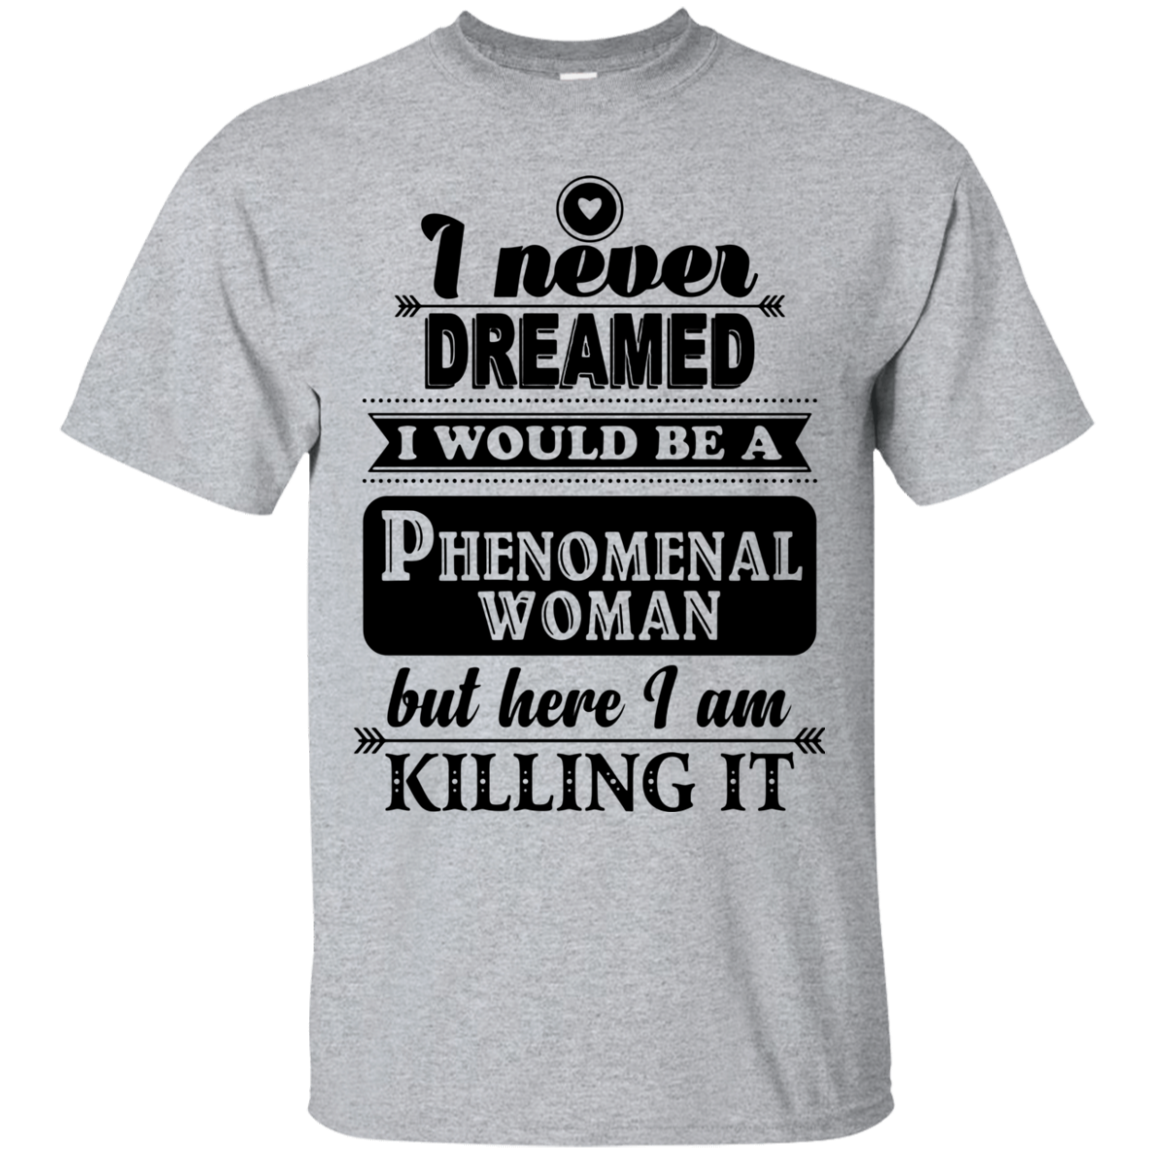 I never dreamed i would be a phenomenal woman but here i am killing it T shirt hoodie sweater Men